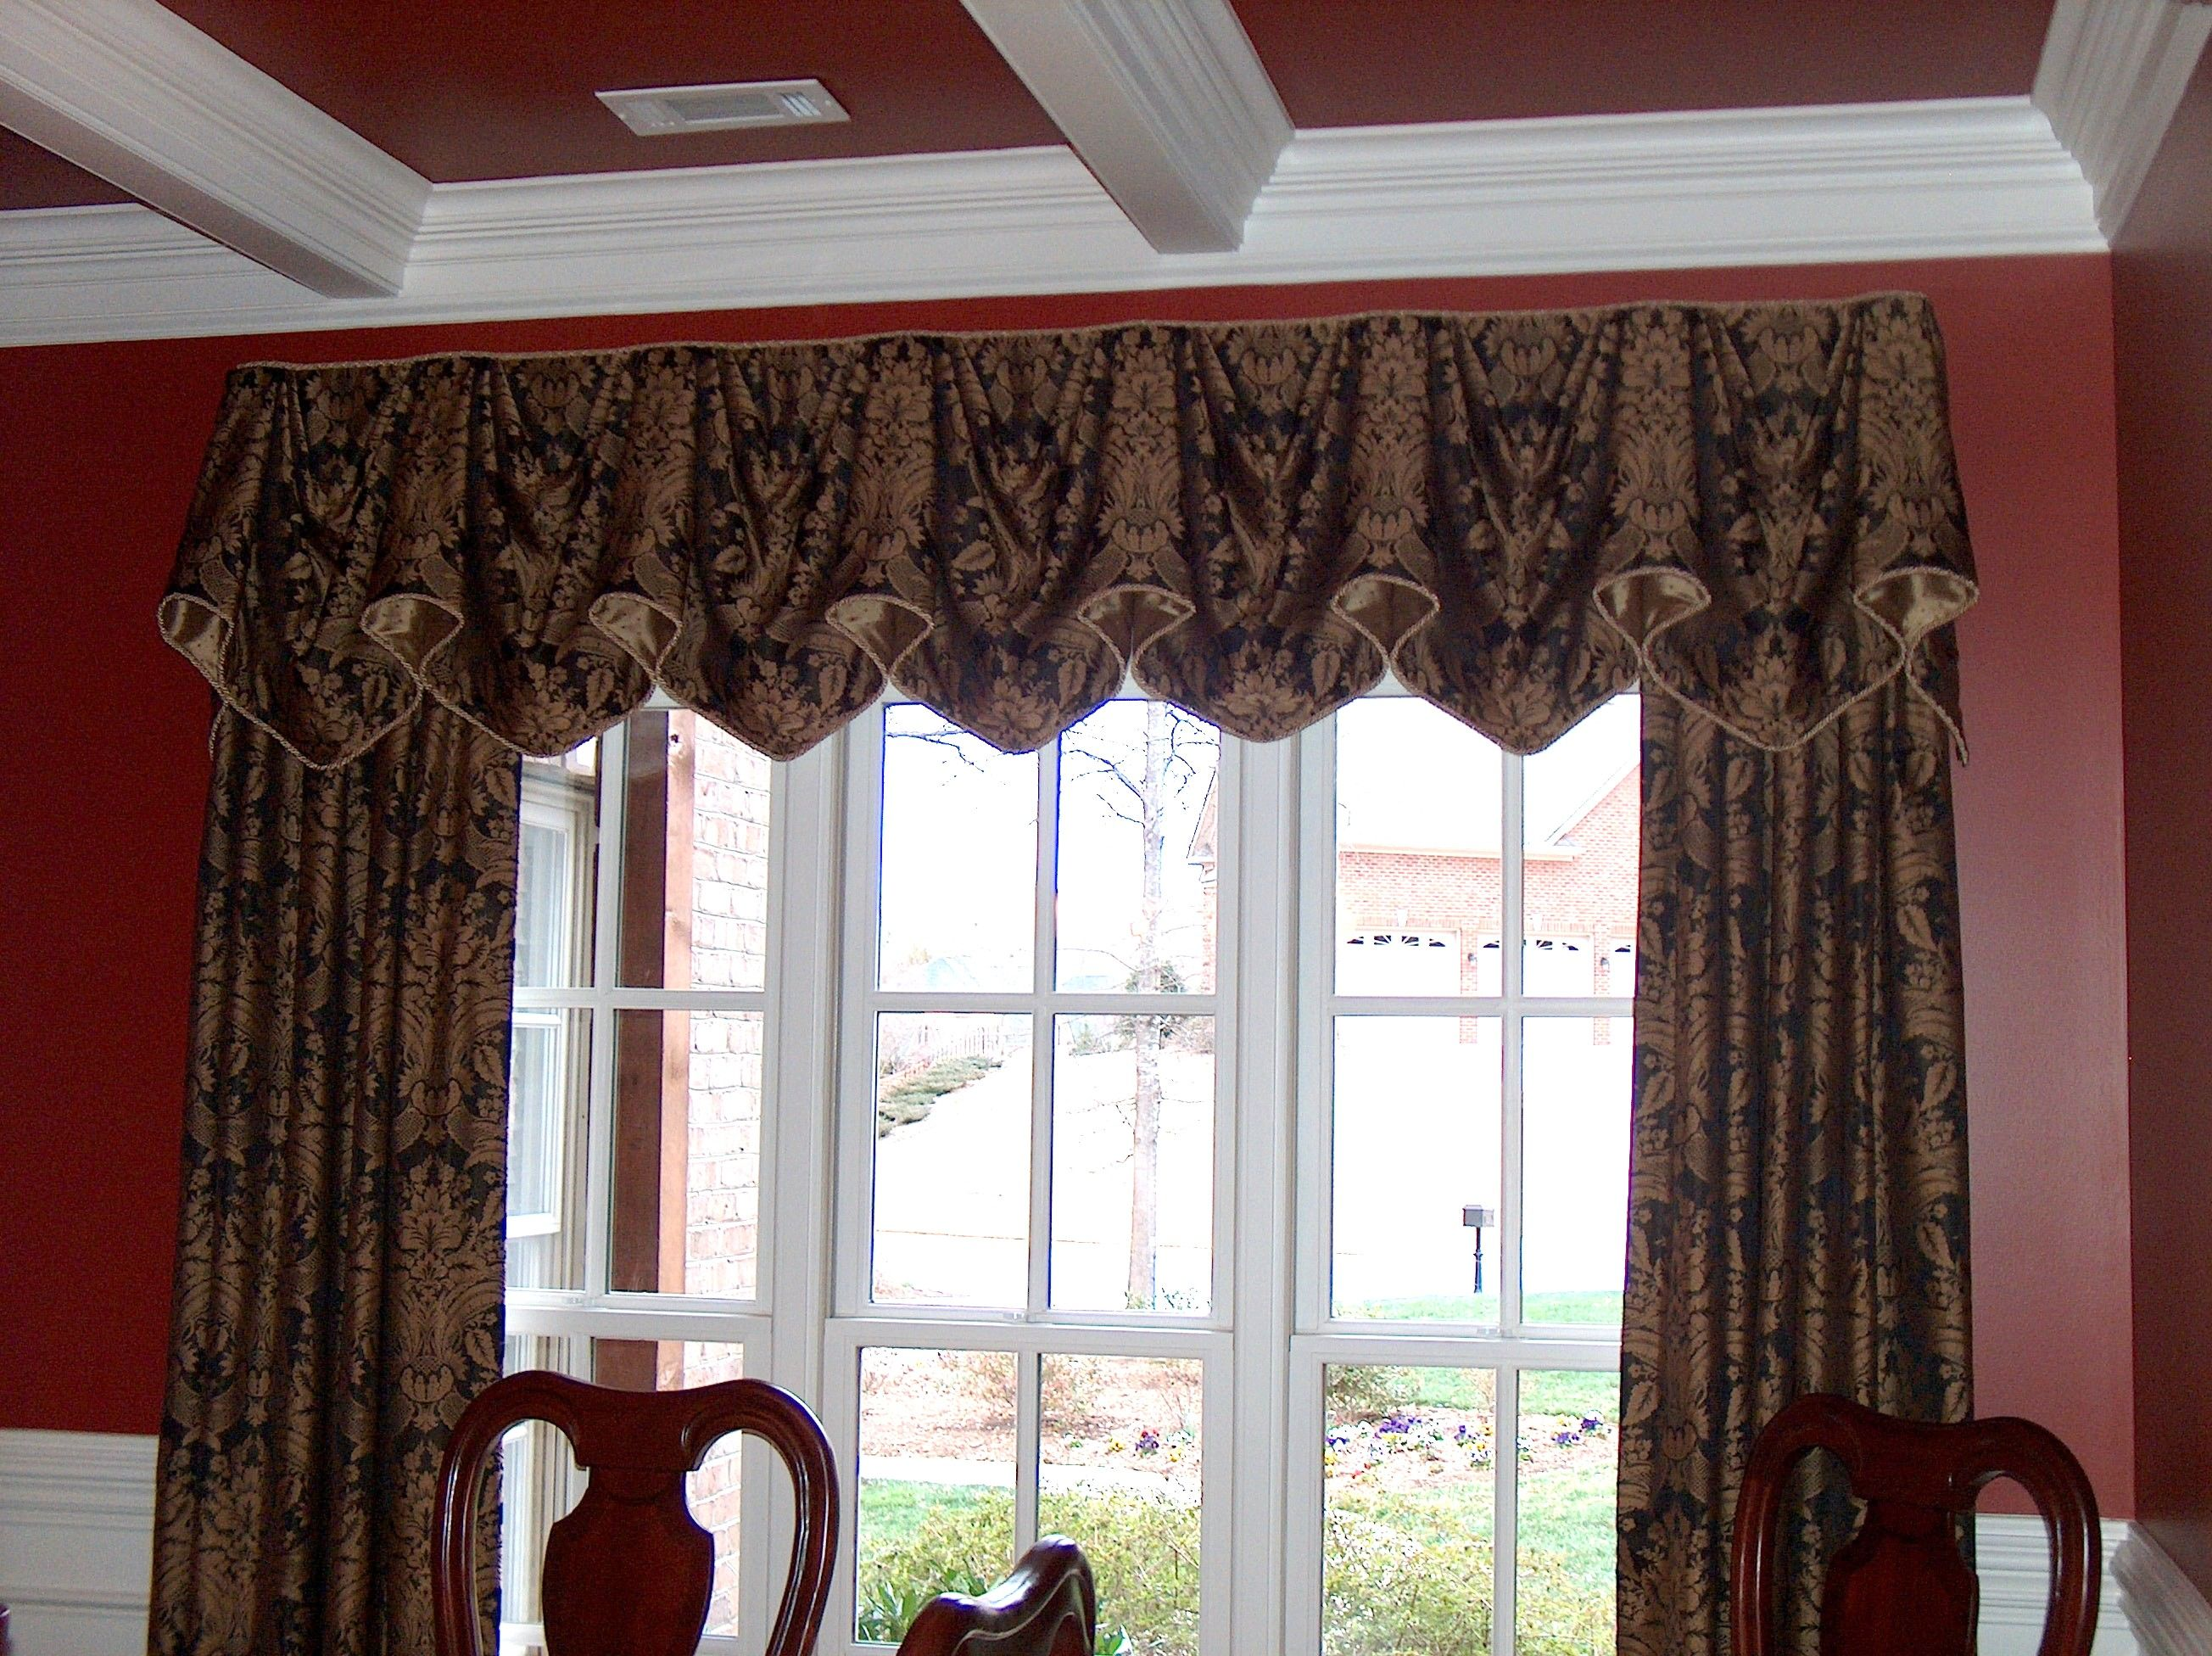 Squire Valance Over Panels In Dining Room  Creationsartistic Fascinating Dining Room Valance Inspiration